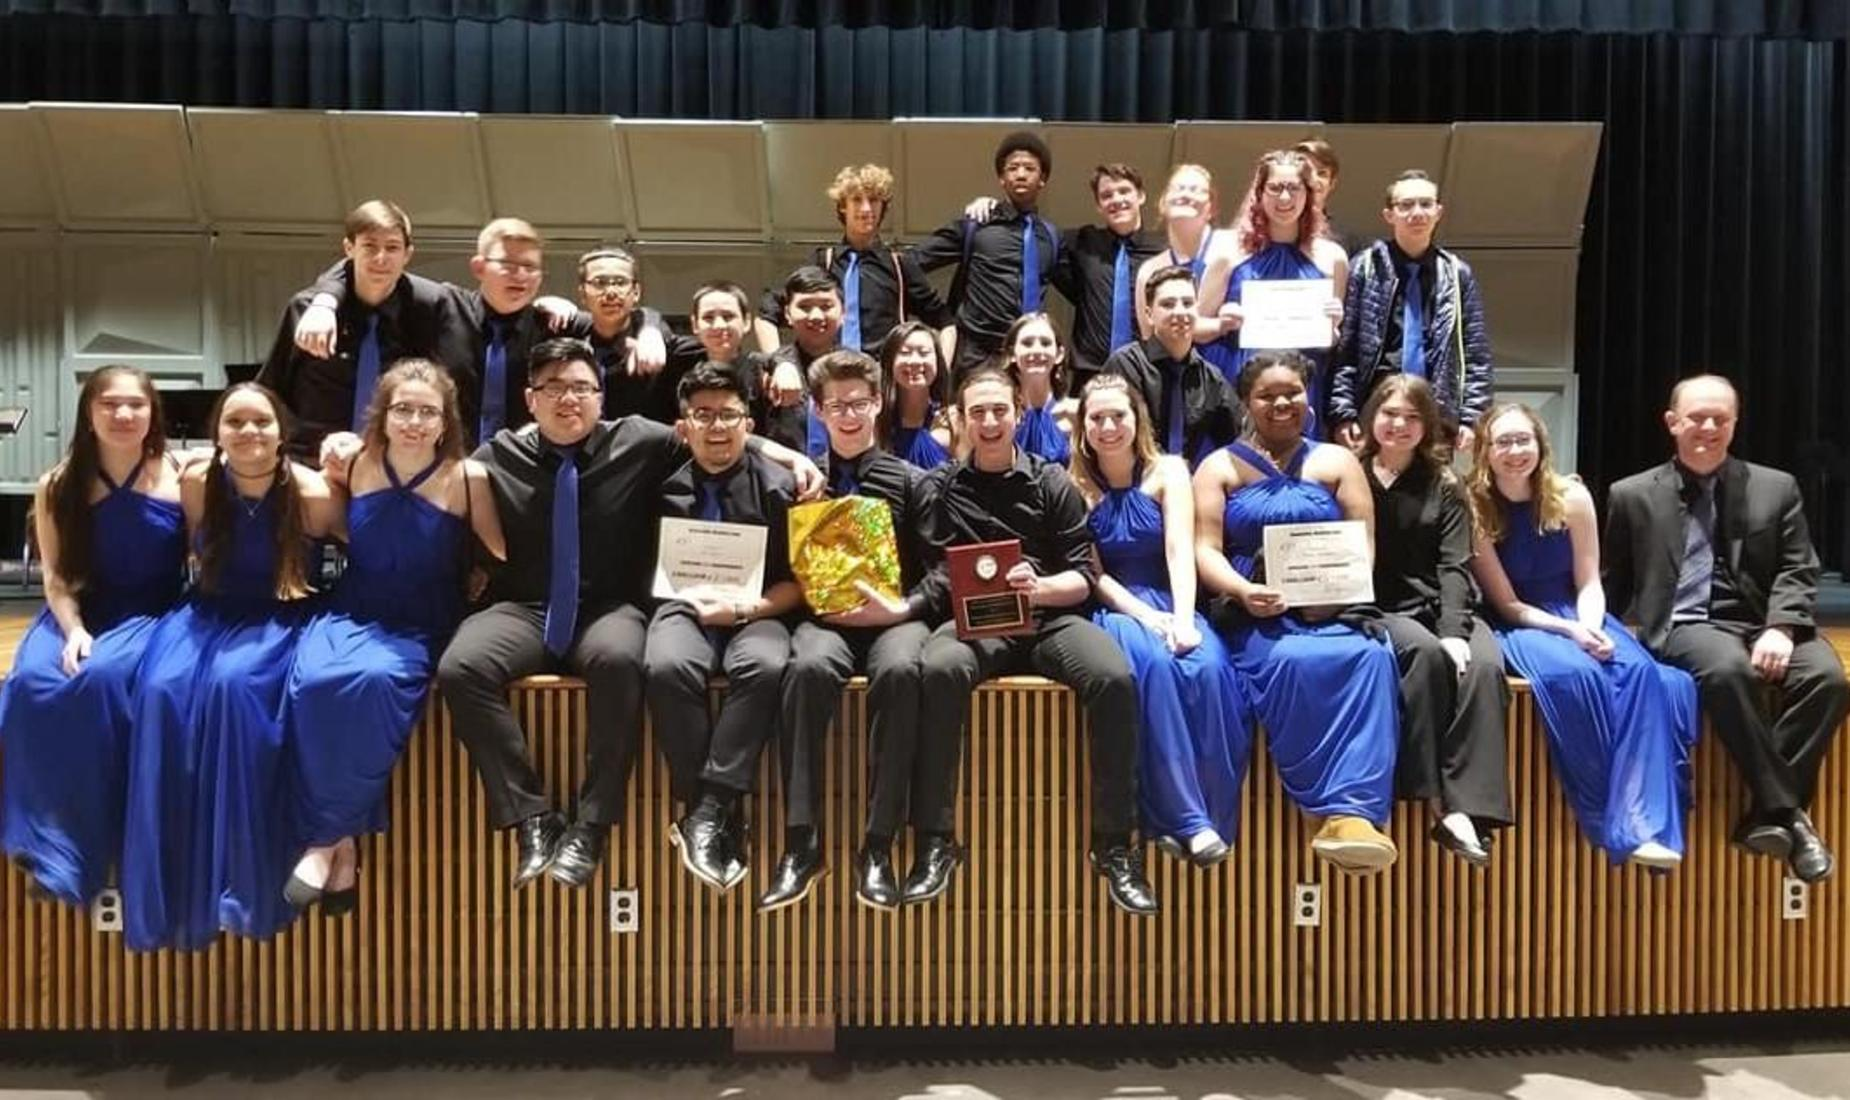 BHS Jazz Ensemble holding their Superior rating plaque. Ladies dressed in royal blue gowns and guys wearing black dress shirts with royal blue ties.